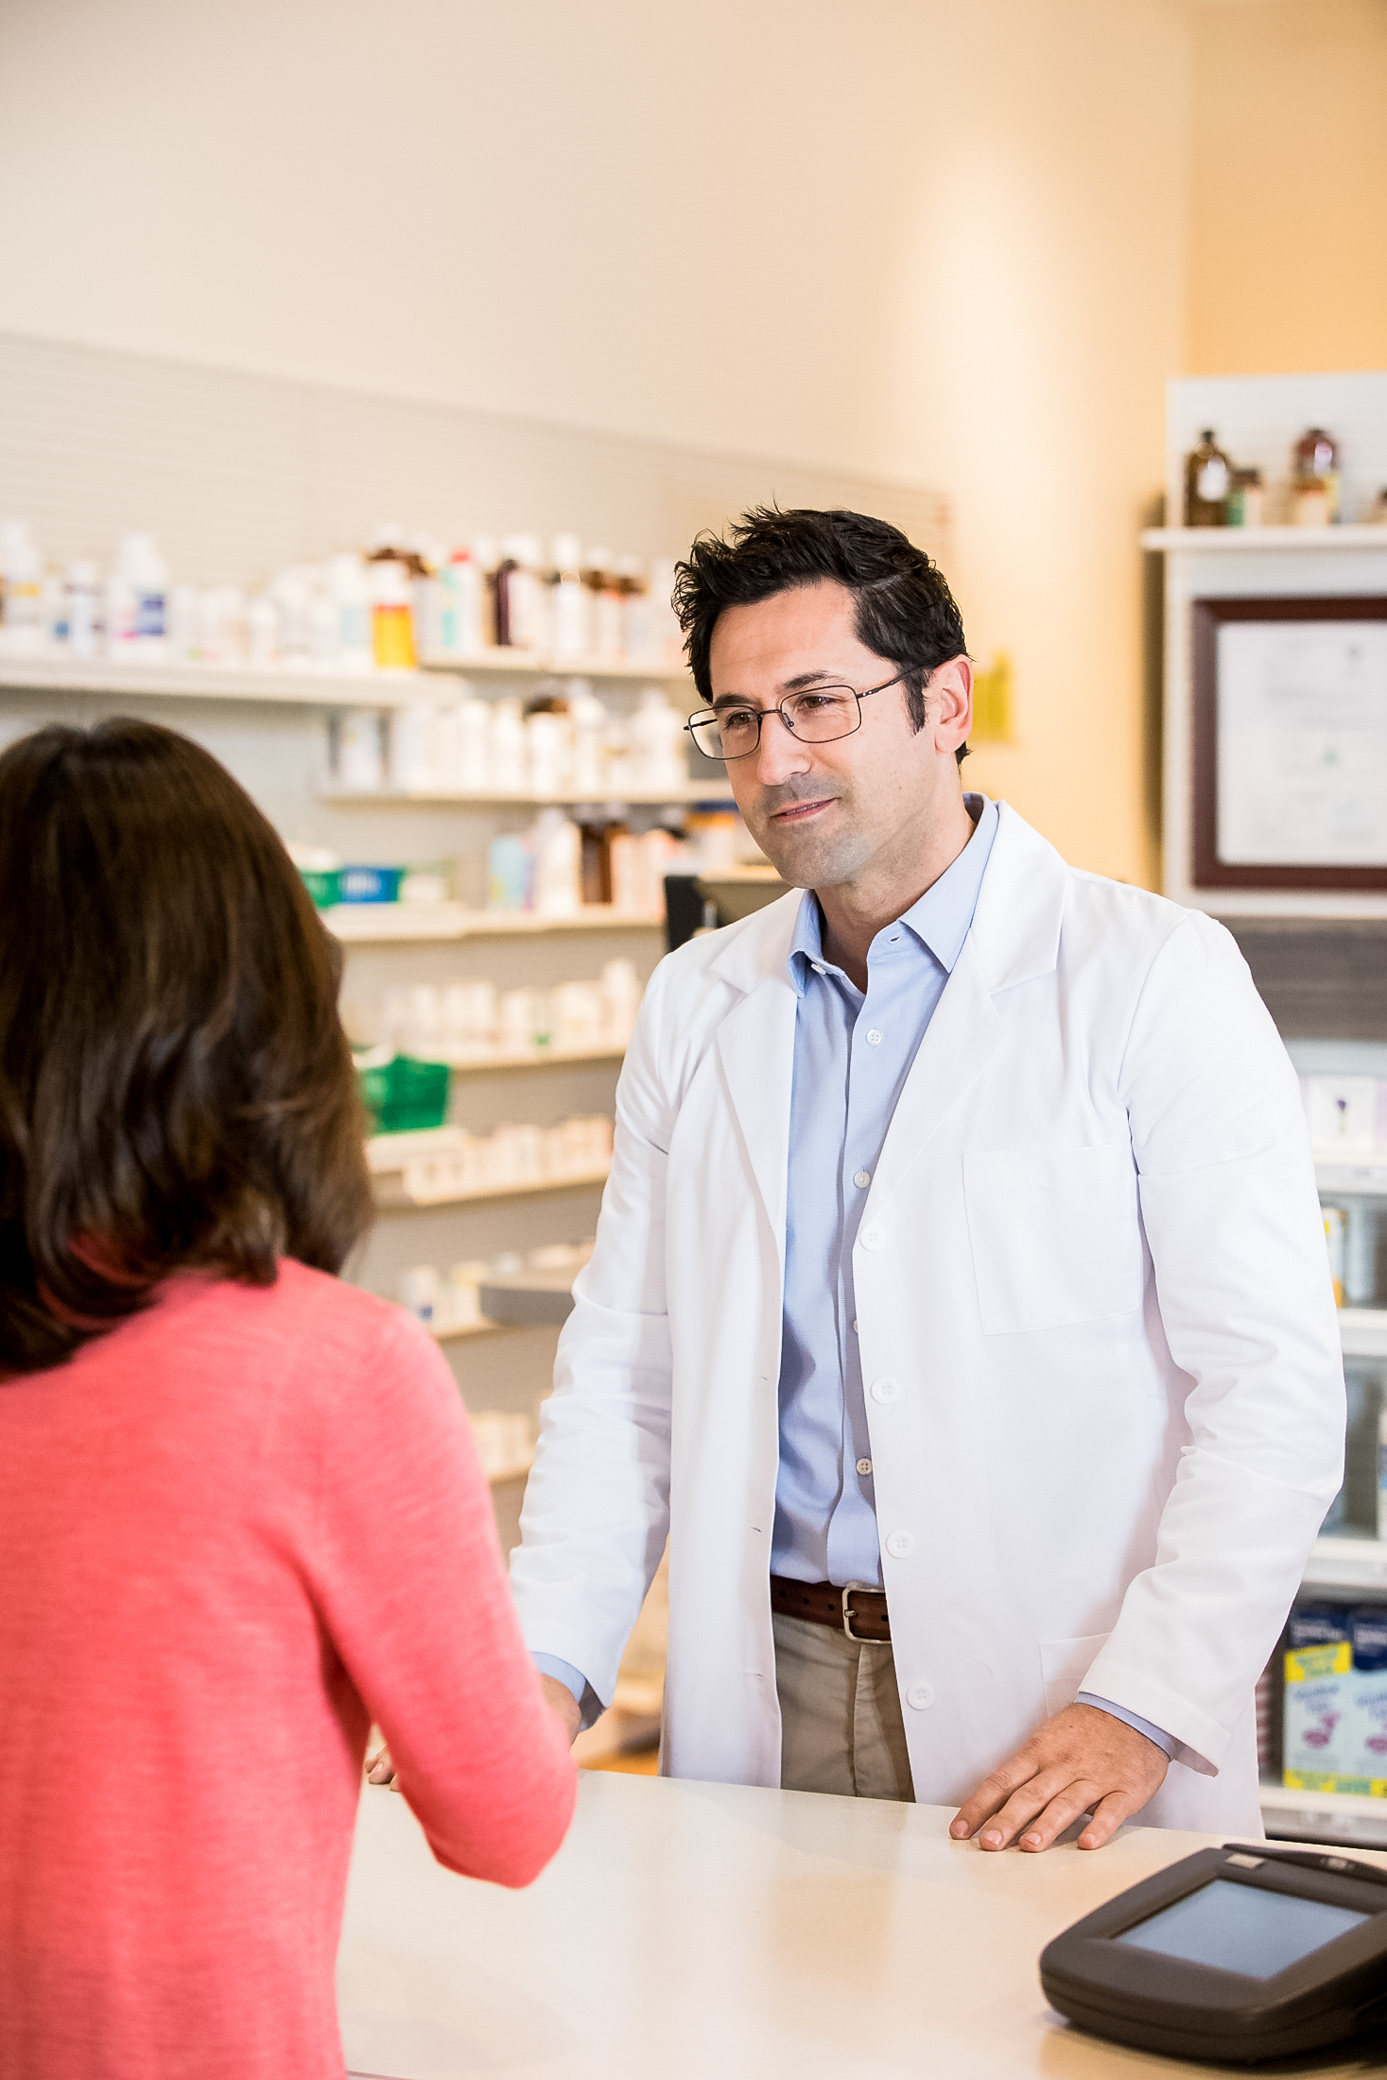 EL_2_PHARMACY_1_PharmacistCounter_004.jpg